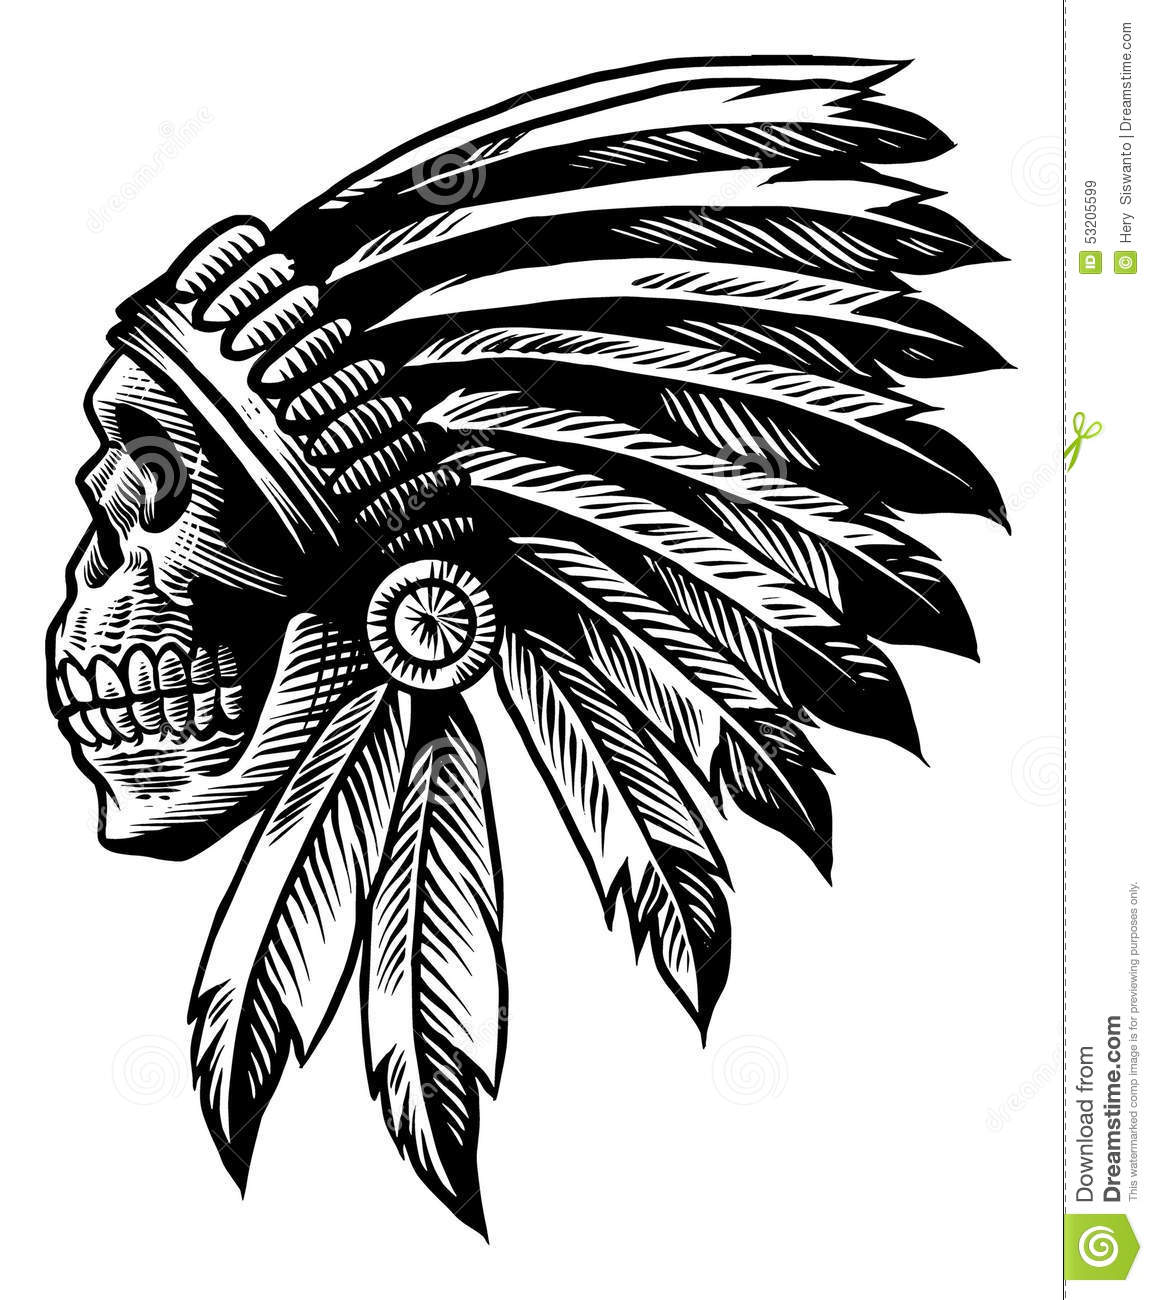 Stock Illustration Skull Indian Chief Hand Drawing Style Vector Image53205599 further Pocoyo Coloring Pages in addition  together with Birthday Cake Icon Black furthermore Drill Coloring Page. on hat day coloring pages